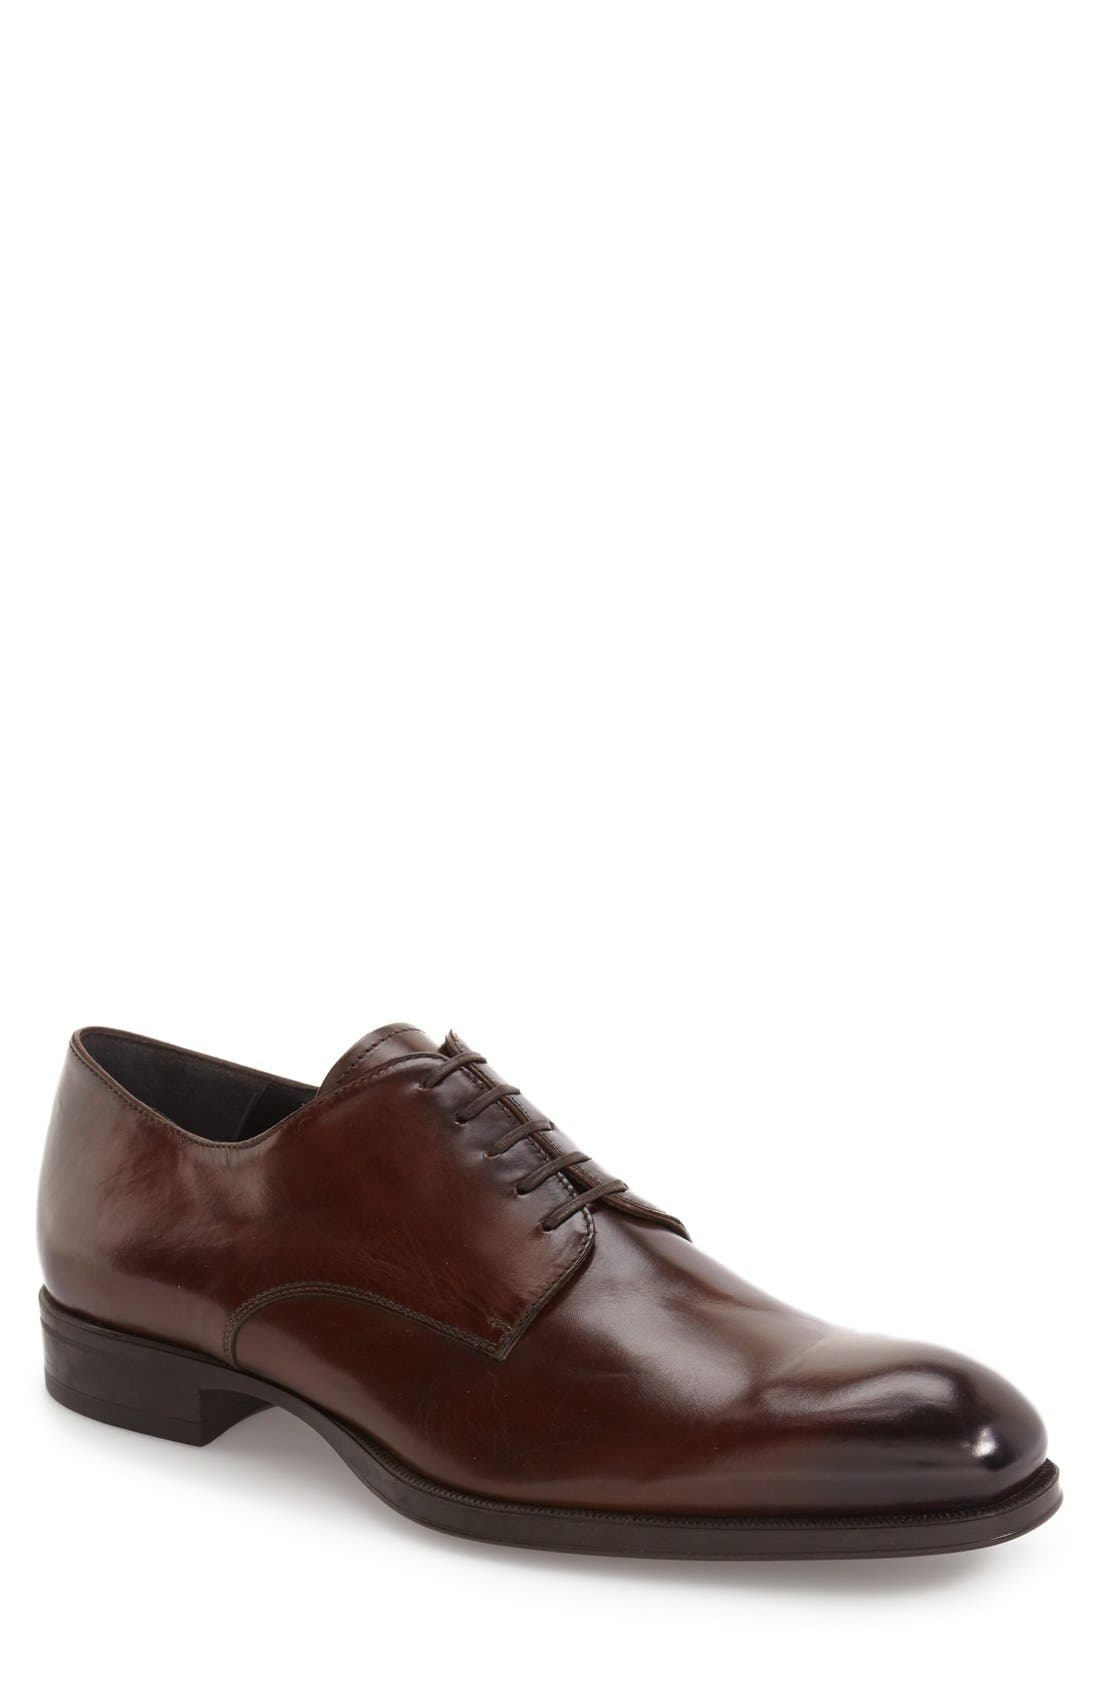 Main Image - To Boot New York 'Buchanan' Plain Toe Derby (Men)